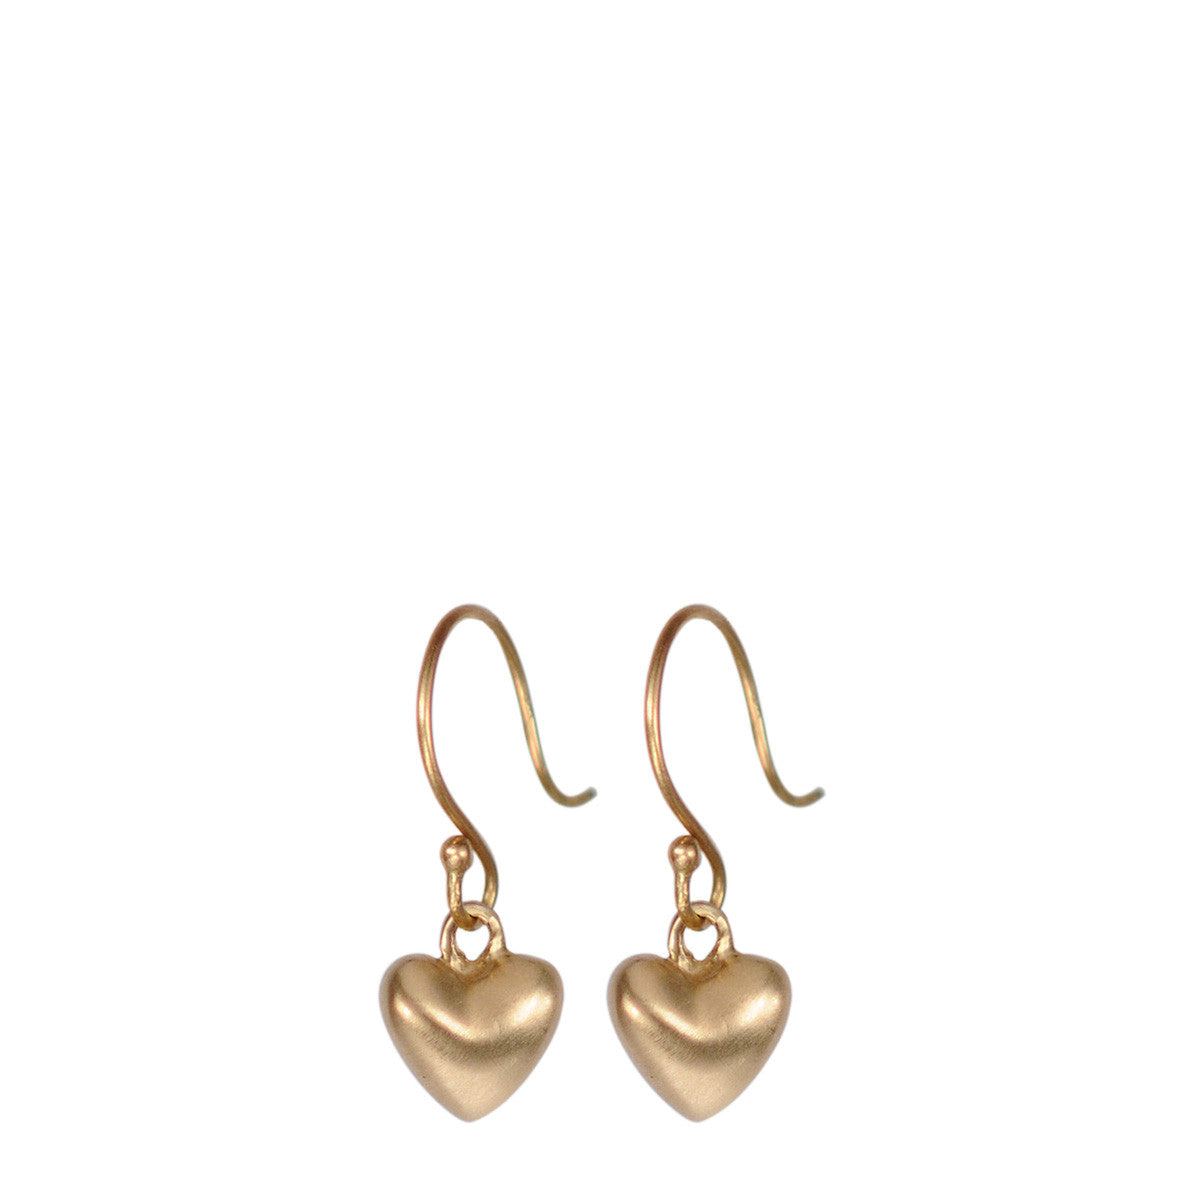 10K Gold Hanging Tiny Heart Earring